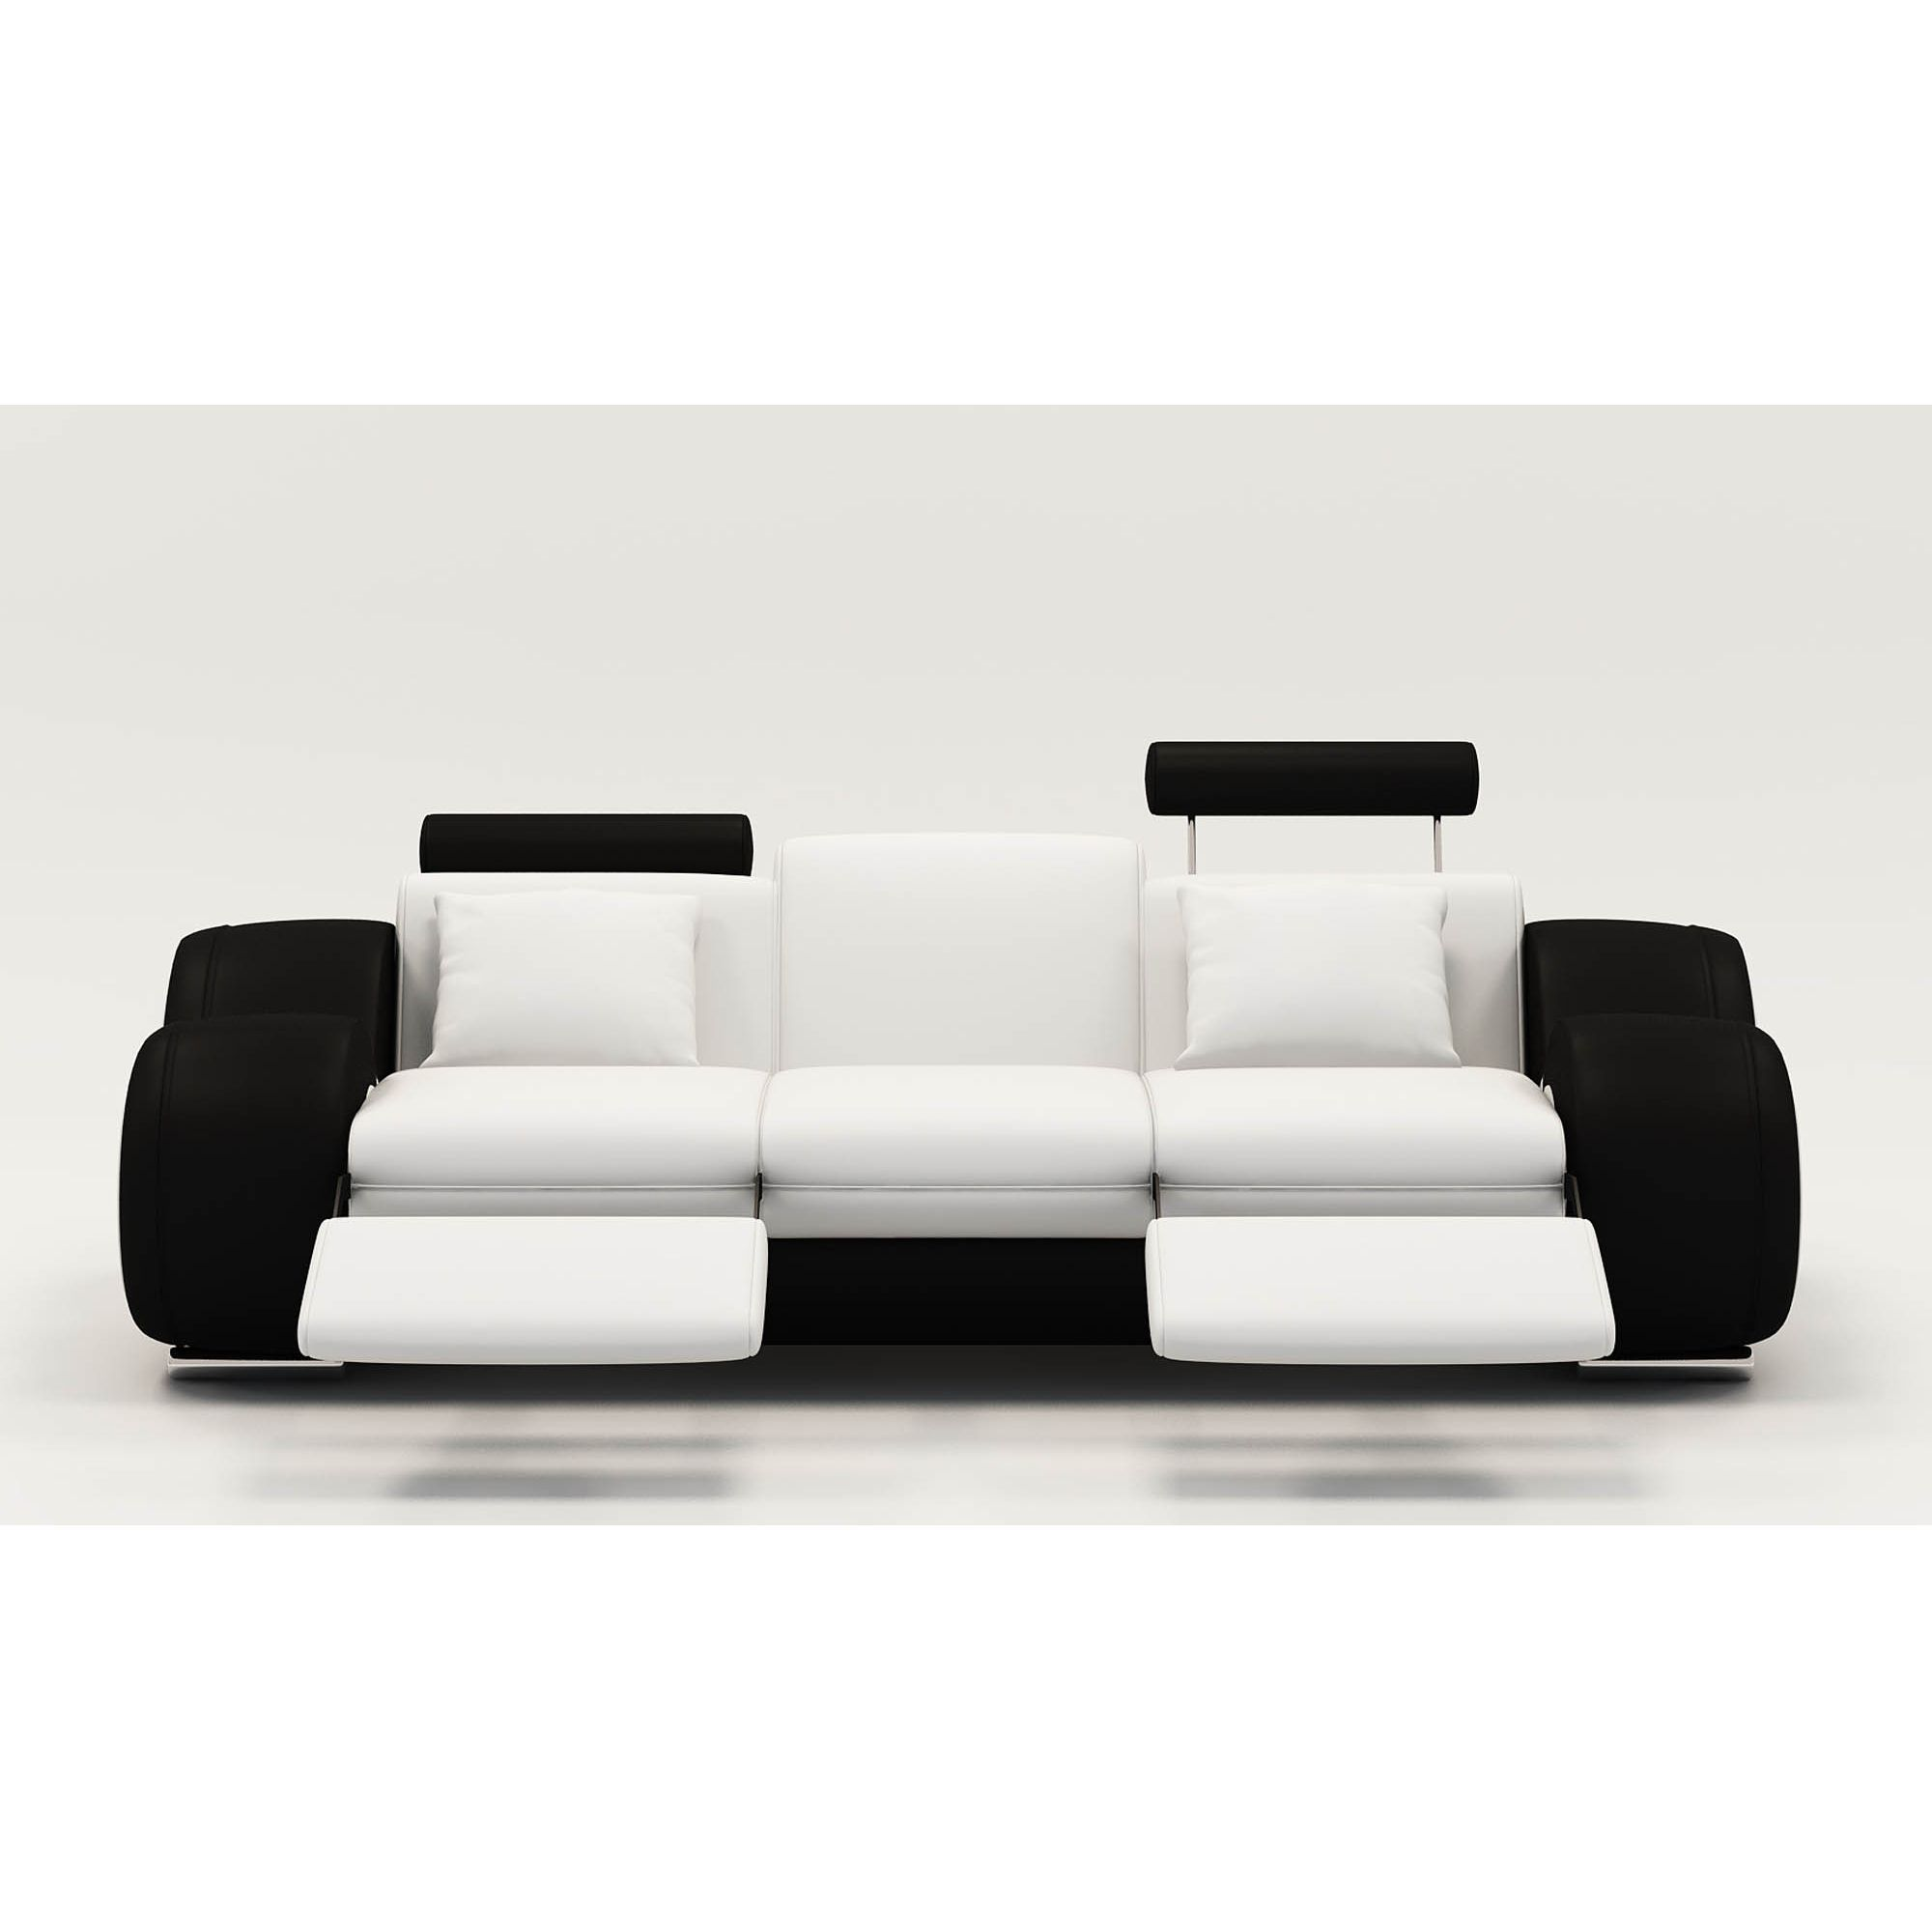 Deco in paris canape design 3 places cuir blanc et noir appuies tetes relax - Canape cuir blanc design ...